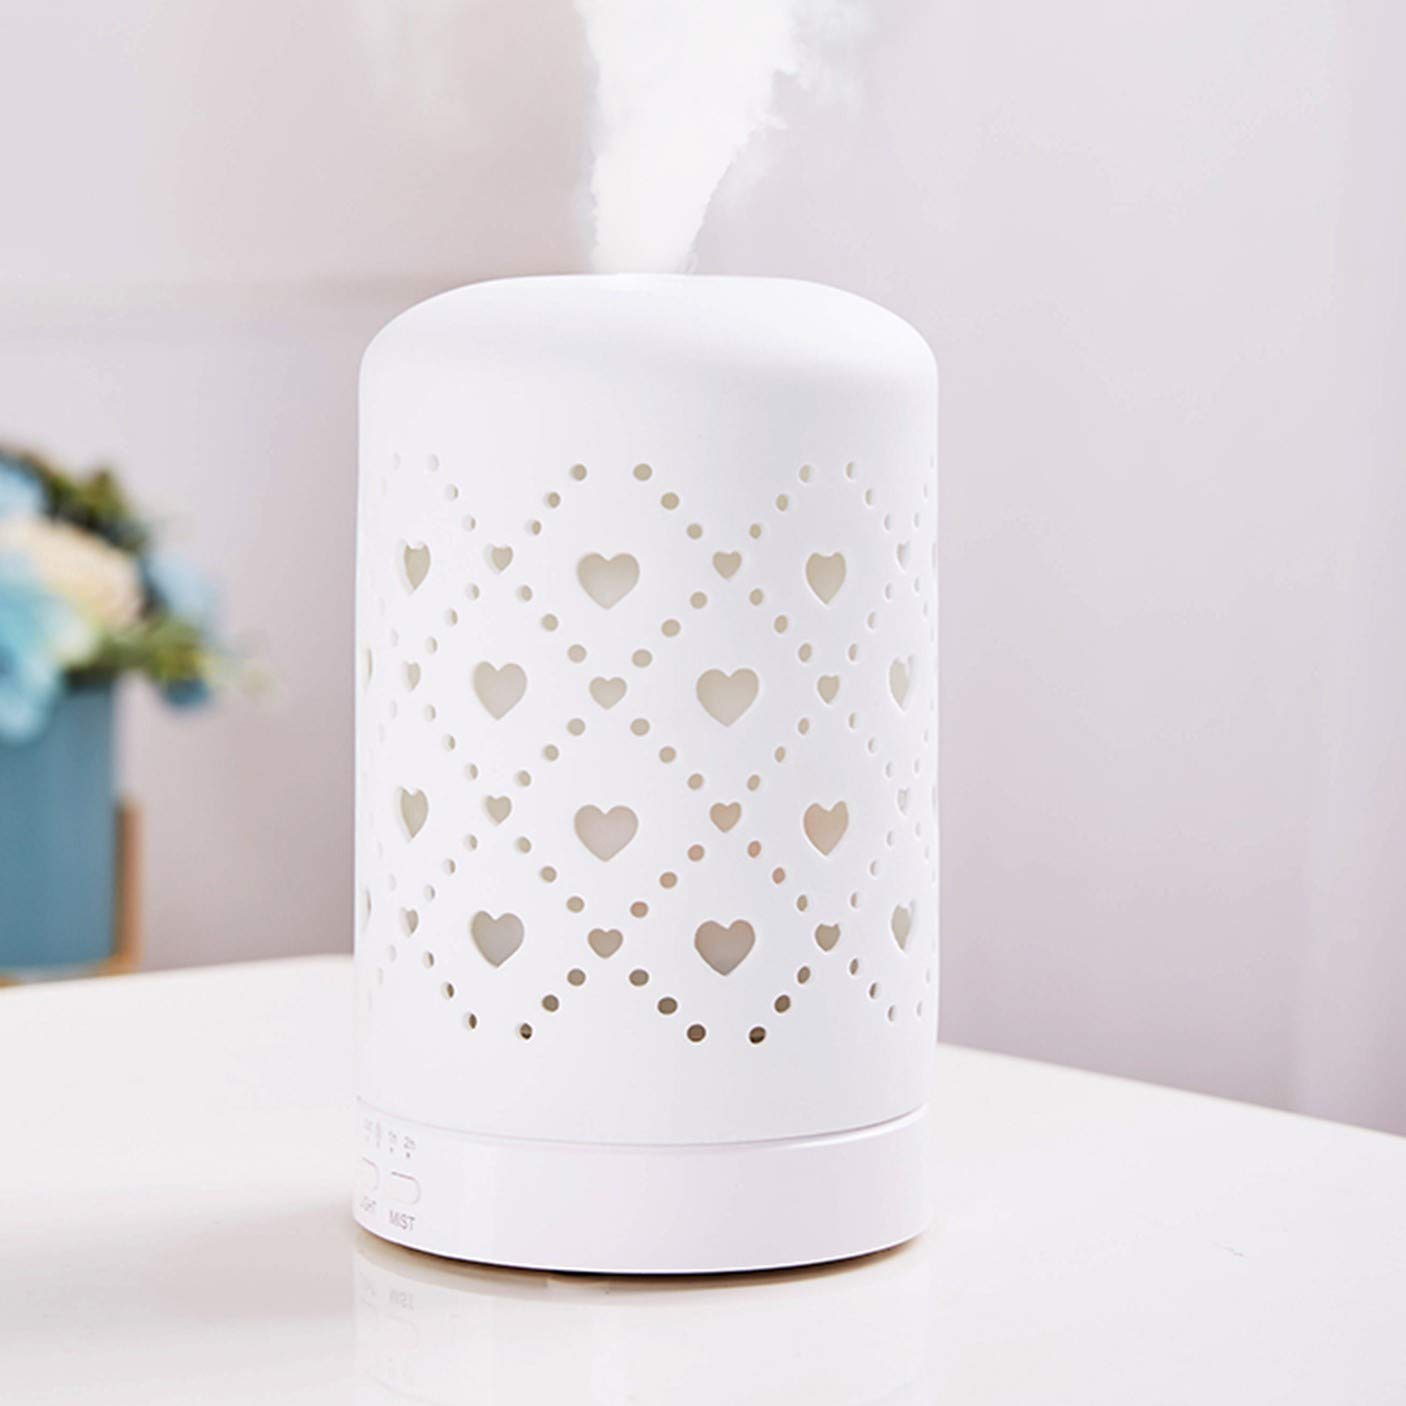 Essential Oil Diffuser, Aromatherapy Ceramic Home Decor Cover Aroma Diffuse with 4 Timer Mode & 7 Color Changing LED Lights (Heart pattern, White)